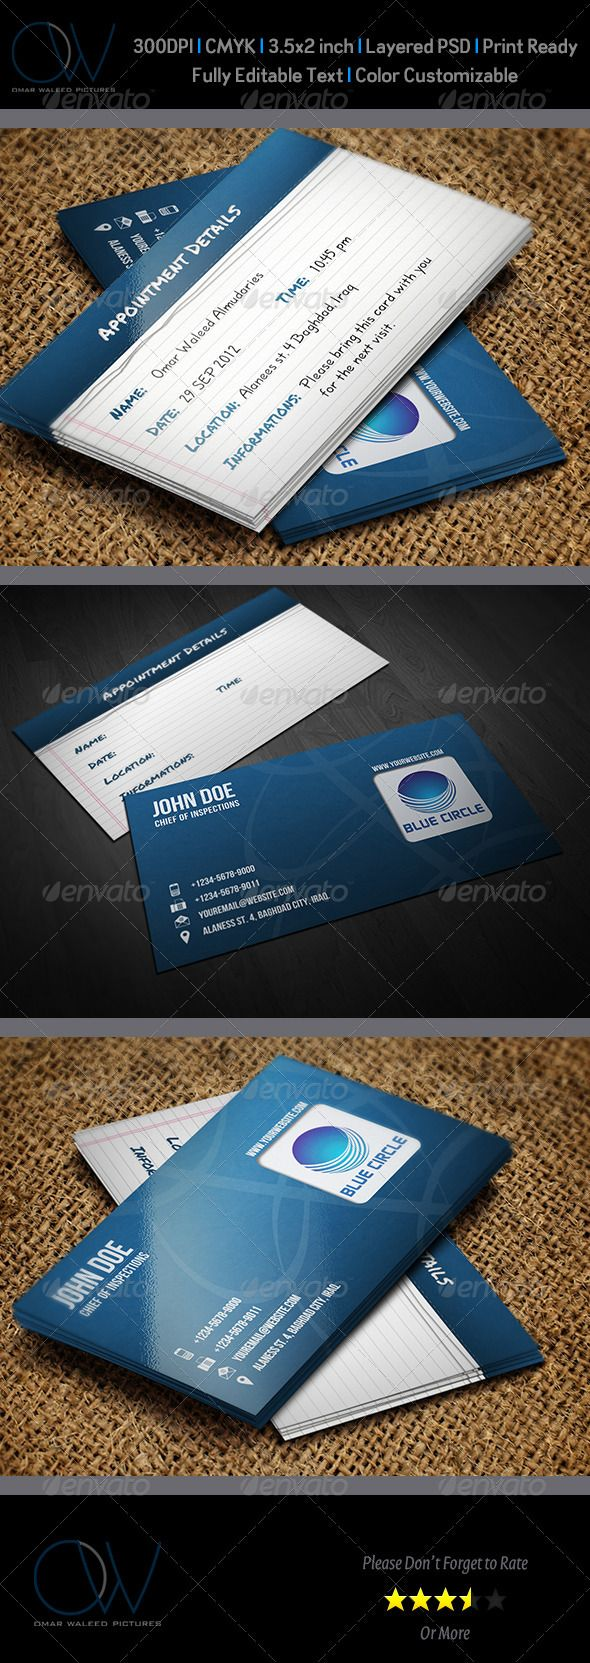 120 best Business Card images on Pinterest | Business cards ...